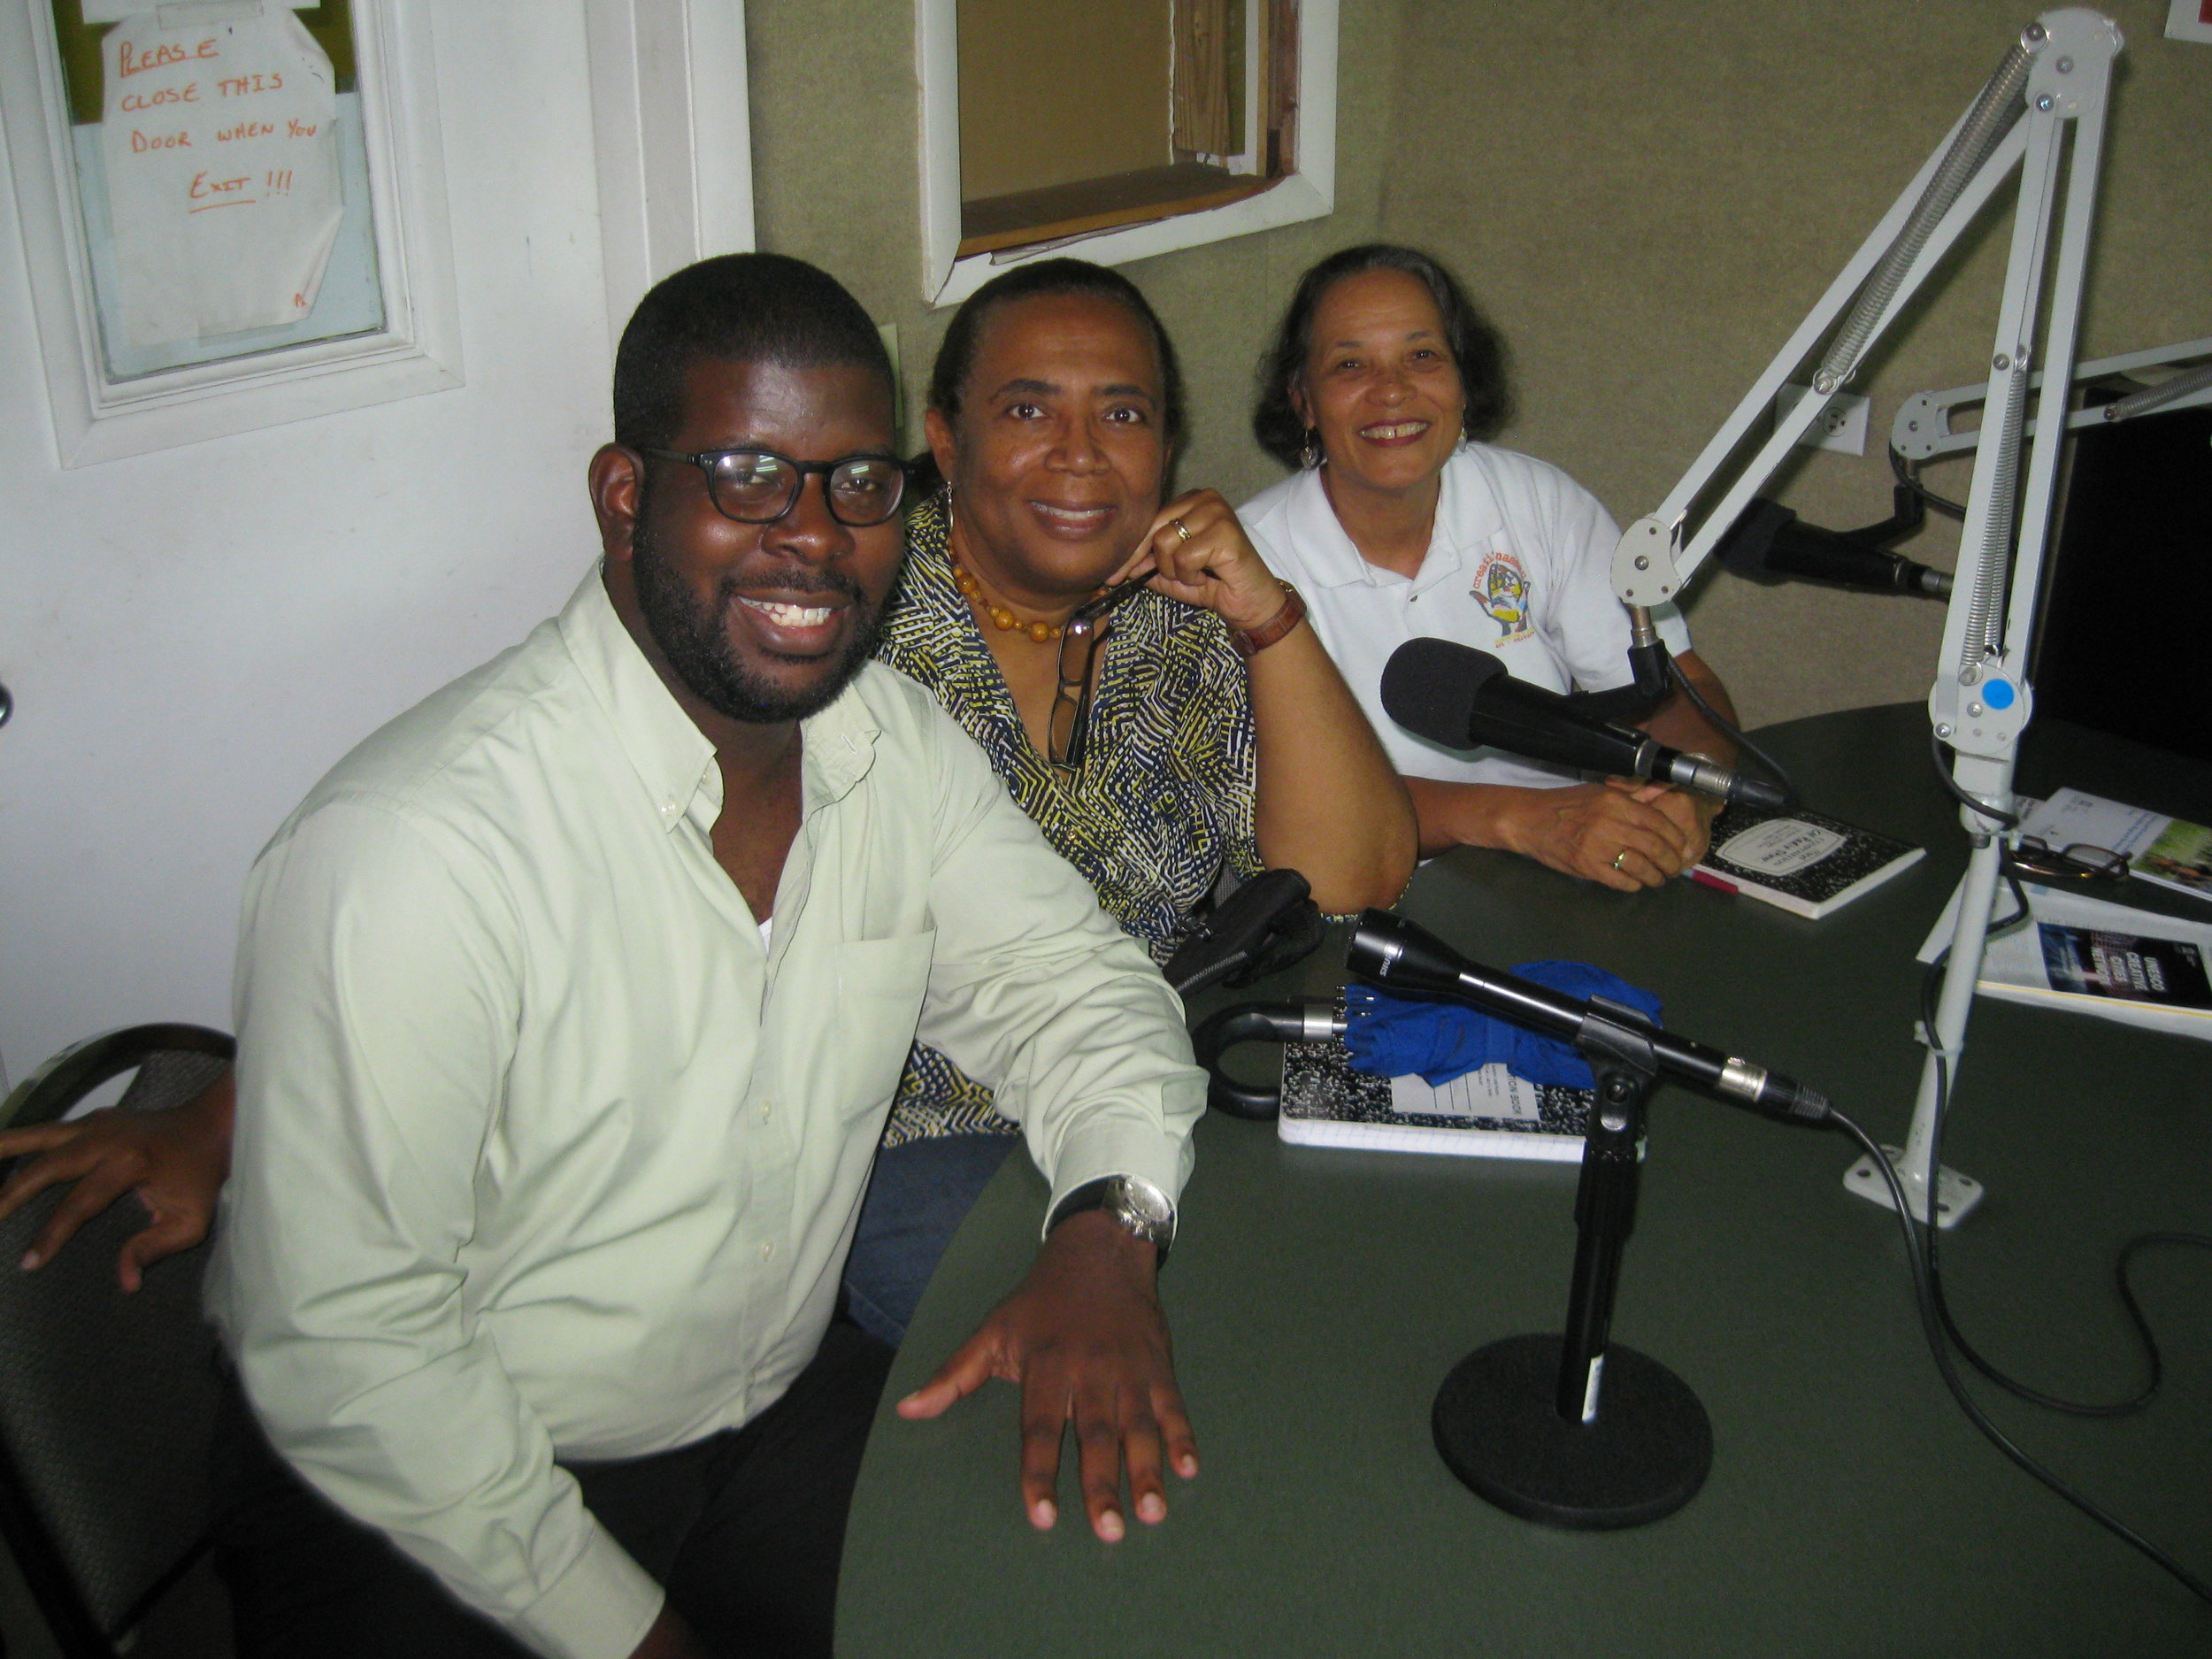 CN Mayor, Gevon Moss of the Downtown Nassau Partnership joins Patti and Pam at the Island FM 102.9 Radio Station to talk about their trip to  Ö stersund, Sweden for the UNESCO Creative Cities Network's Xth Annual Meeting